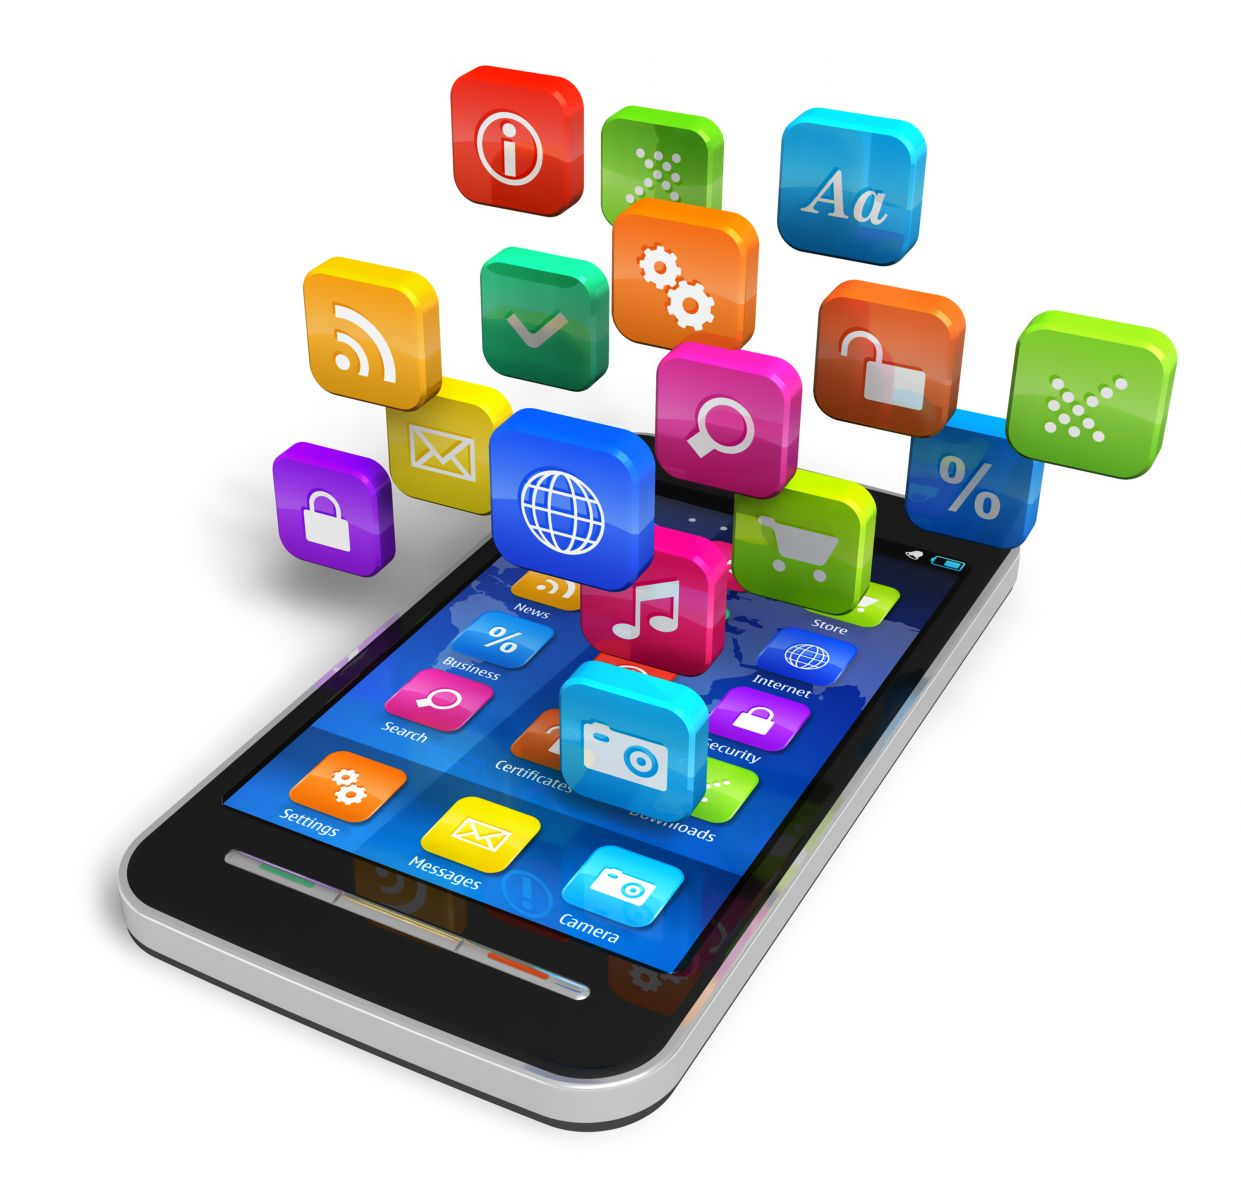 Phone Android Apps For Mobile Phones more tips to help promote your android app